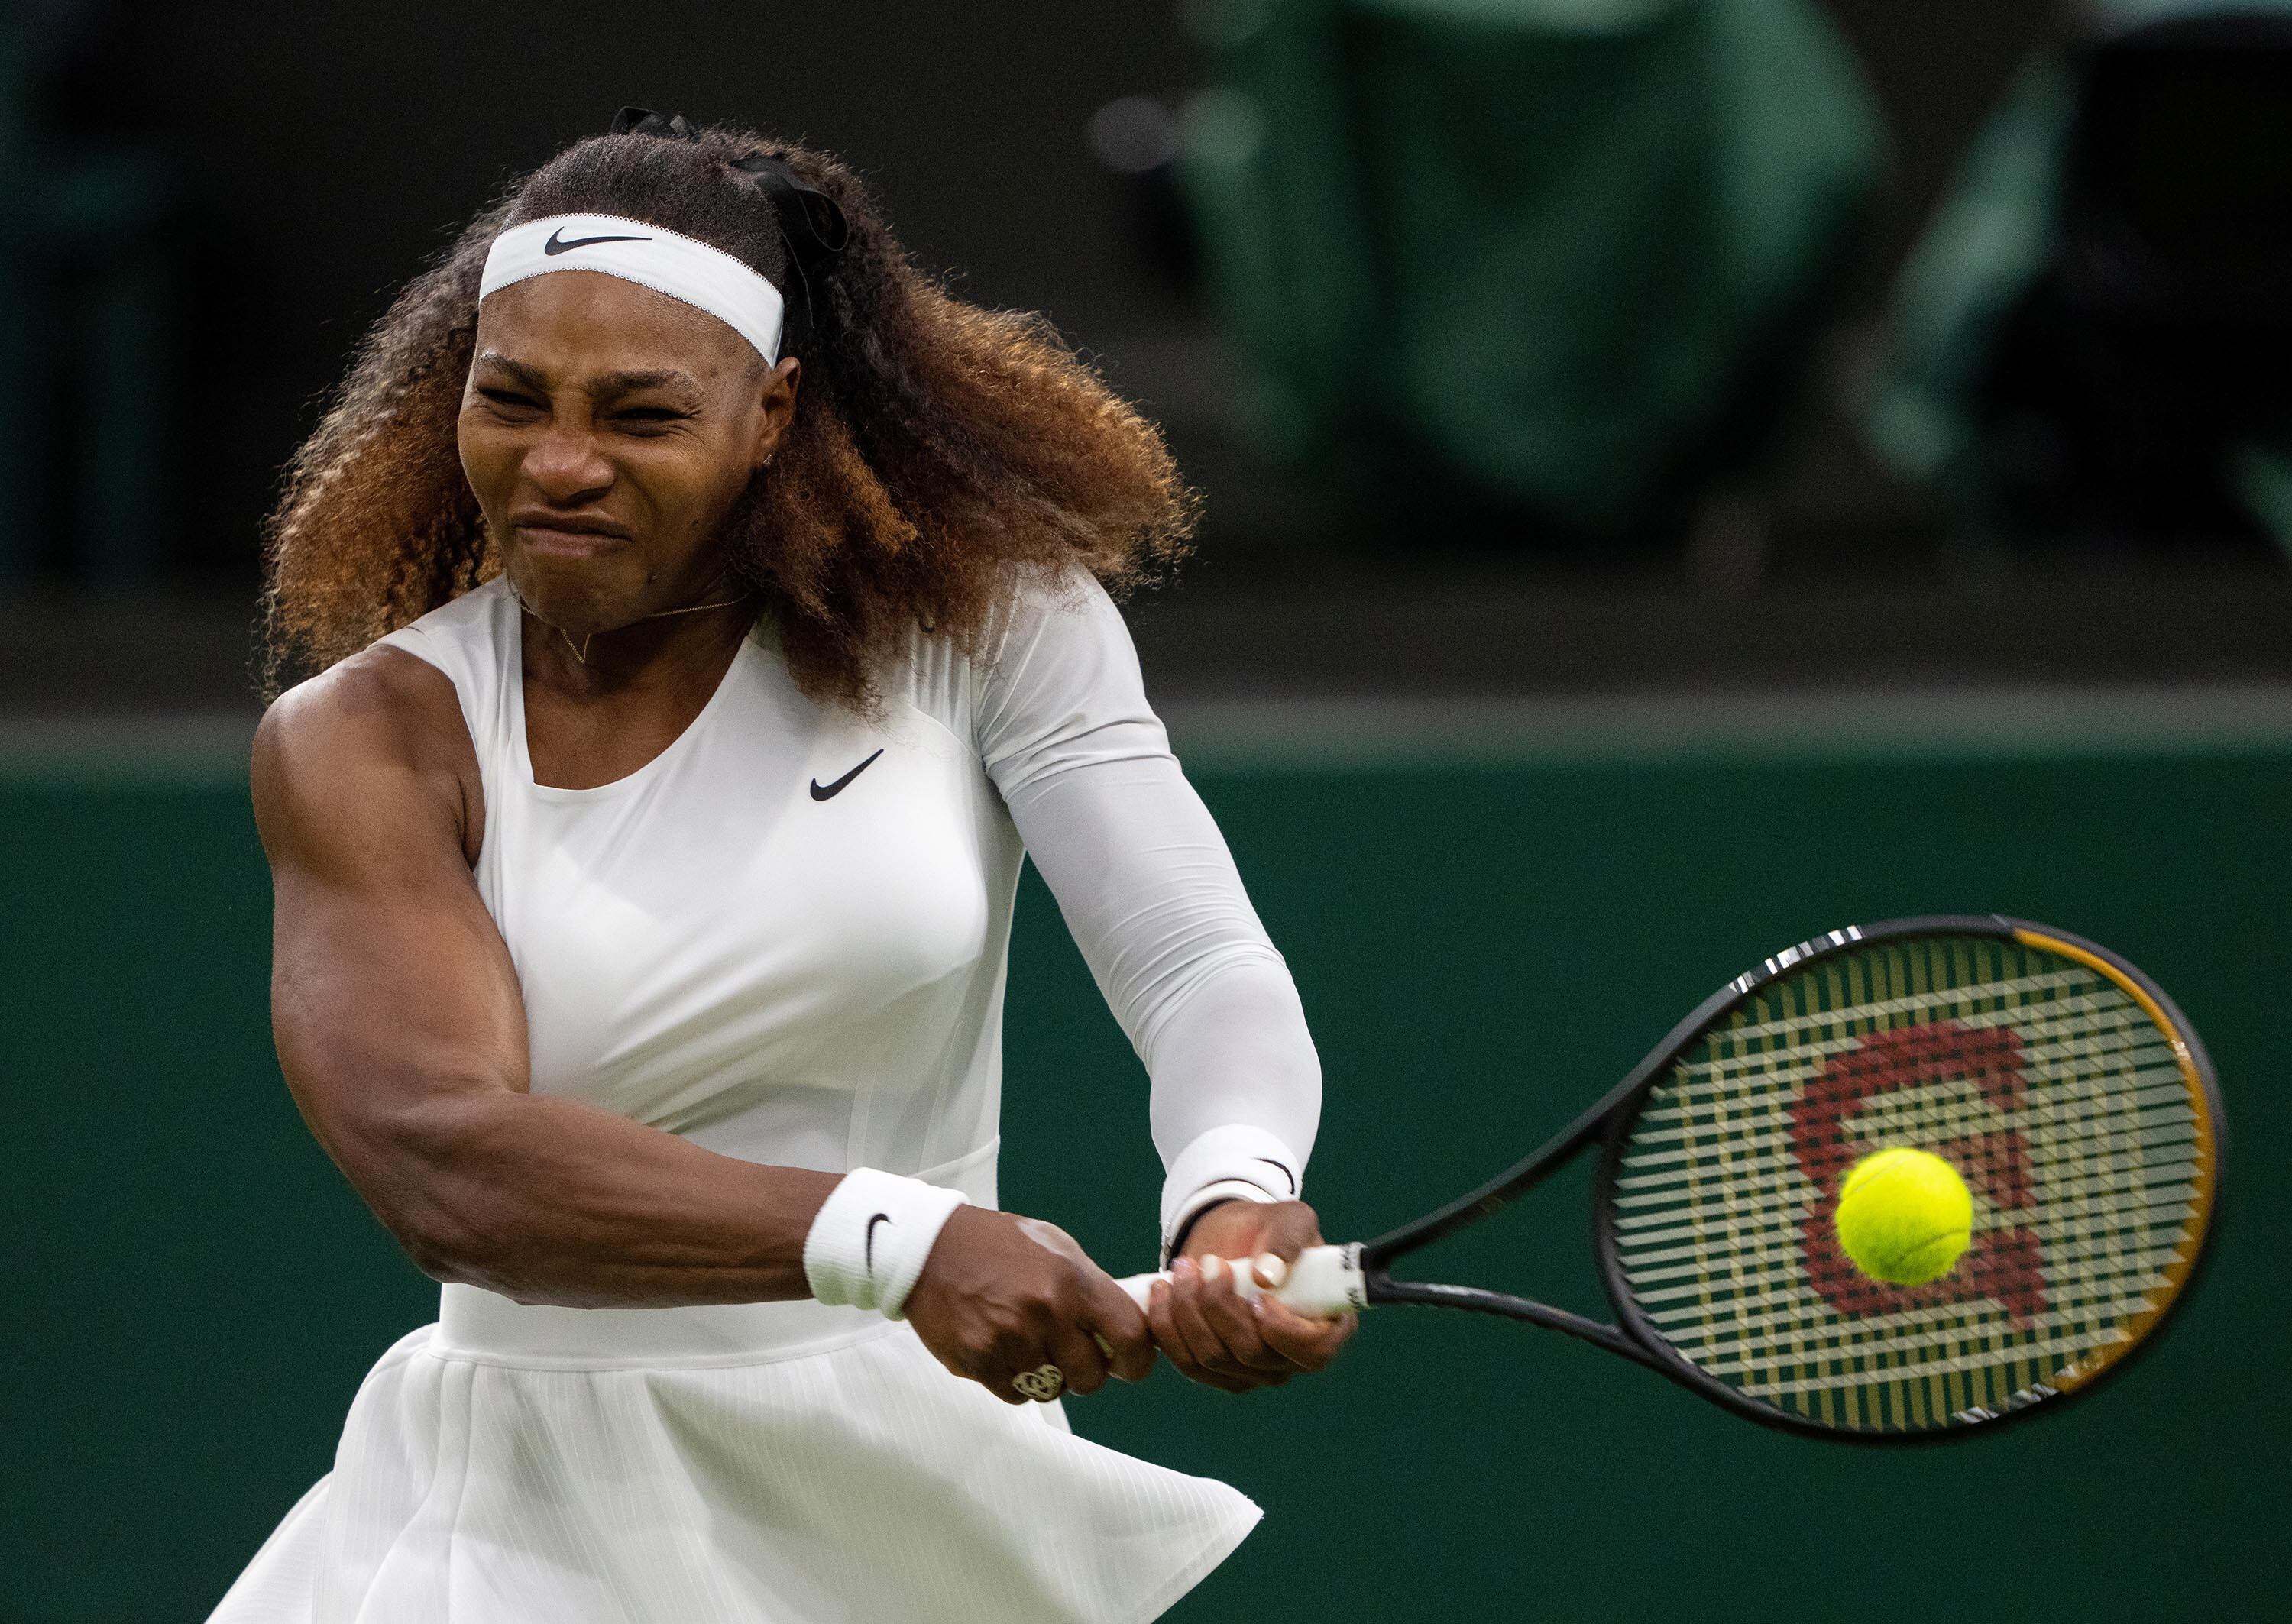 Both of the Williams sisters will miss the US Open